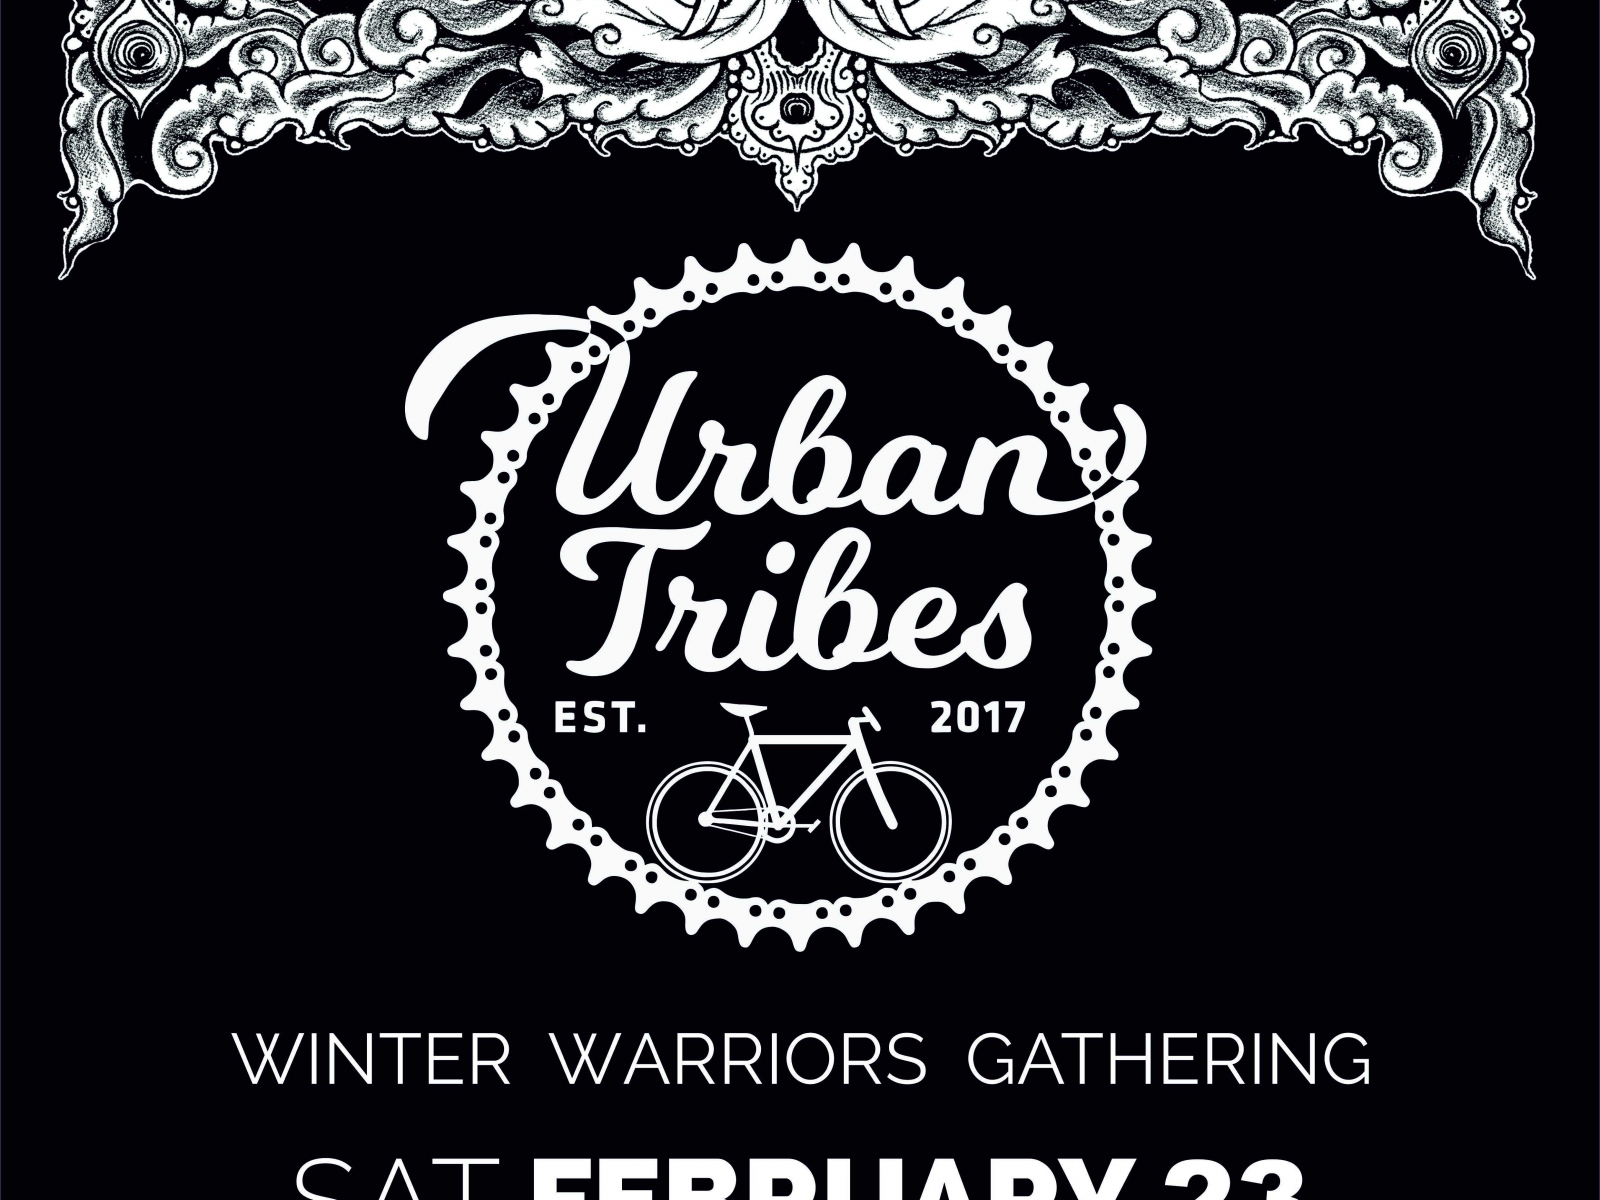 Urban Tribes Winter Warriors Gathering